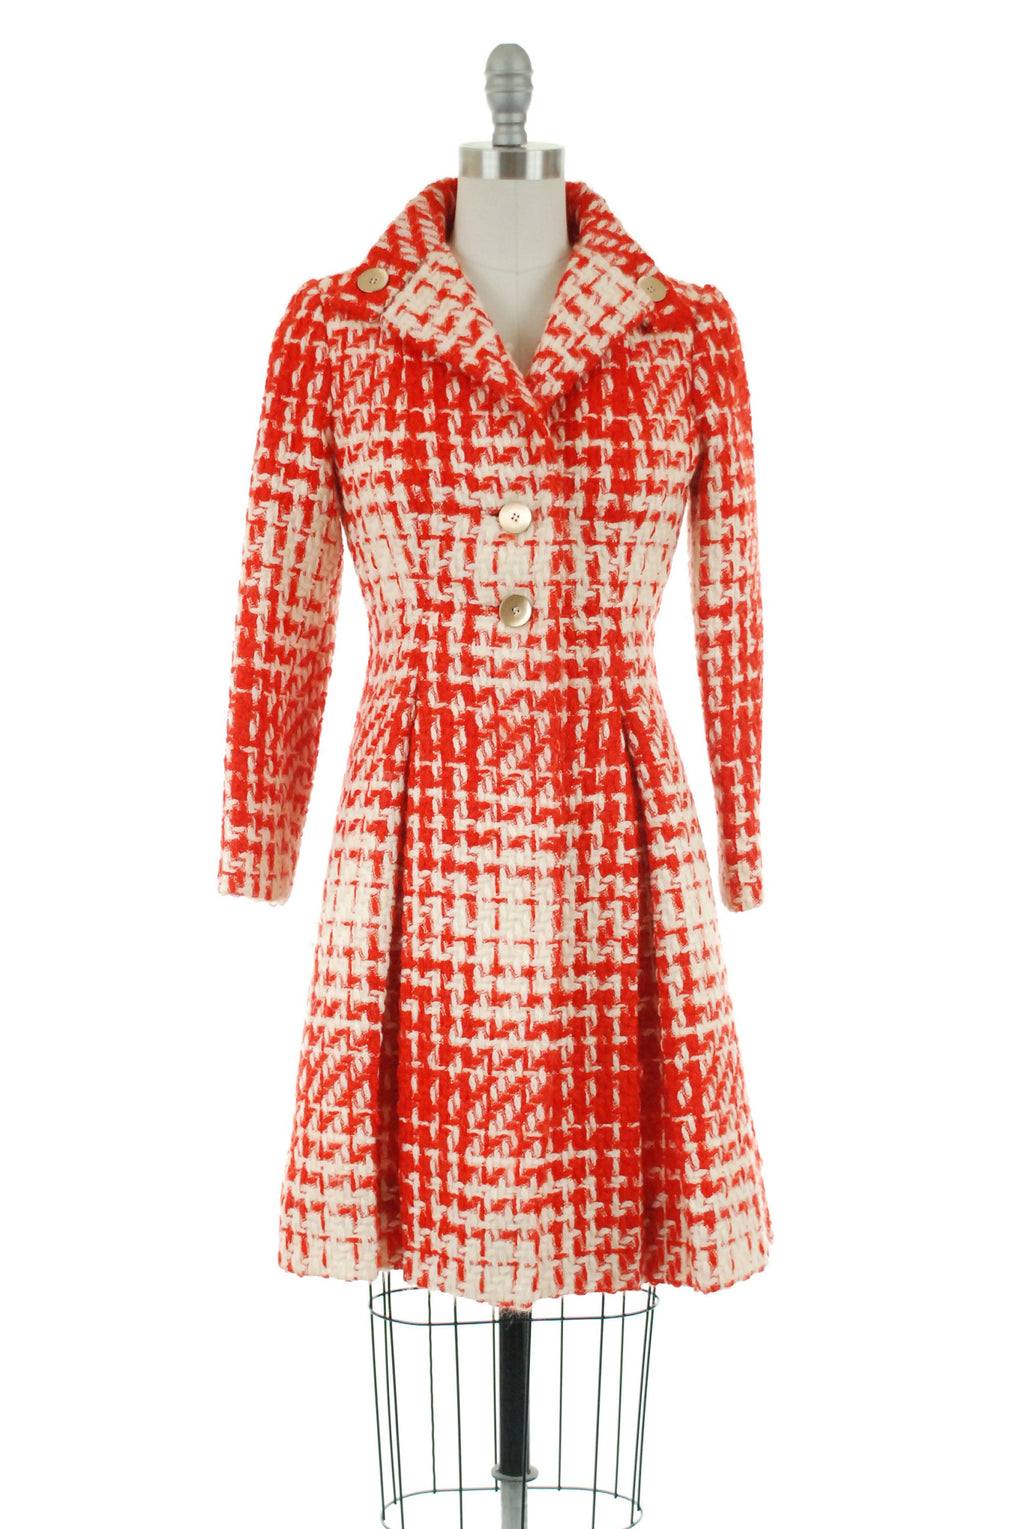 Vintage 1950s Coat - Fantastic Pauline Trigere Bright Red and White Late 50s Princess Coat in Cheery Plaid